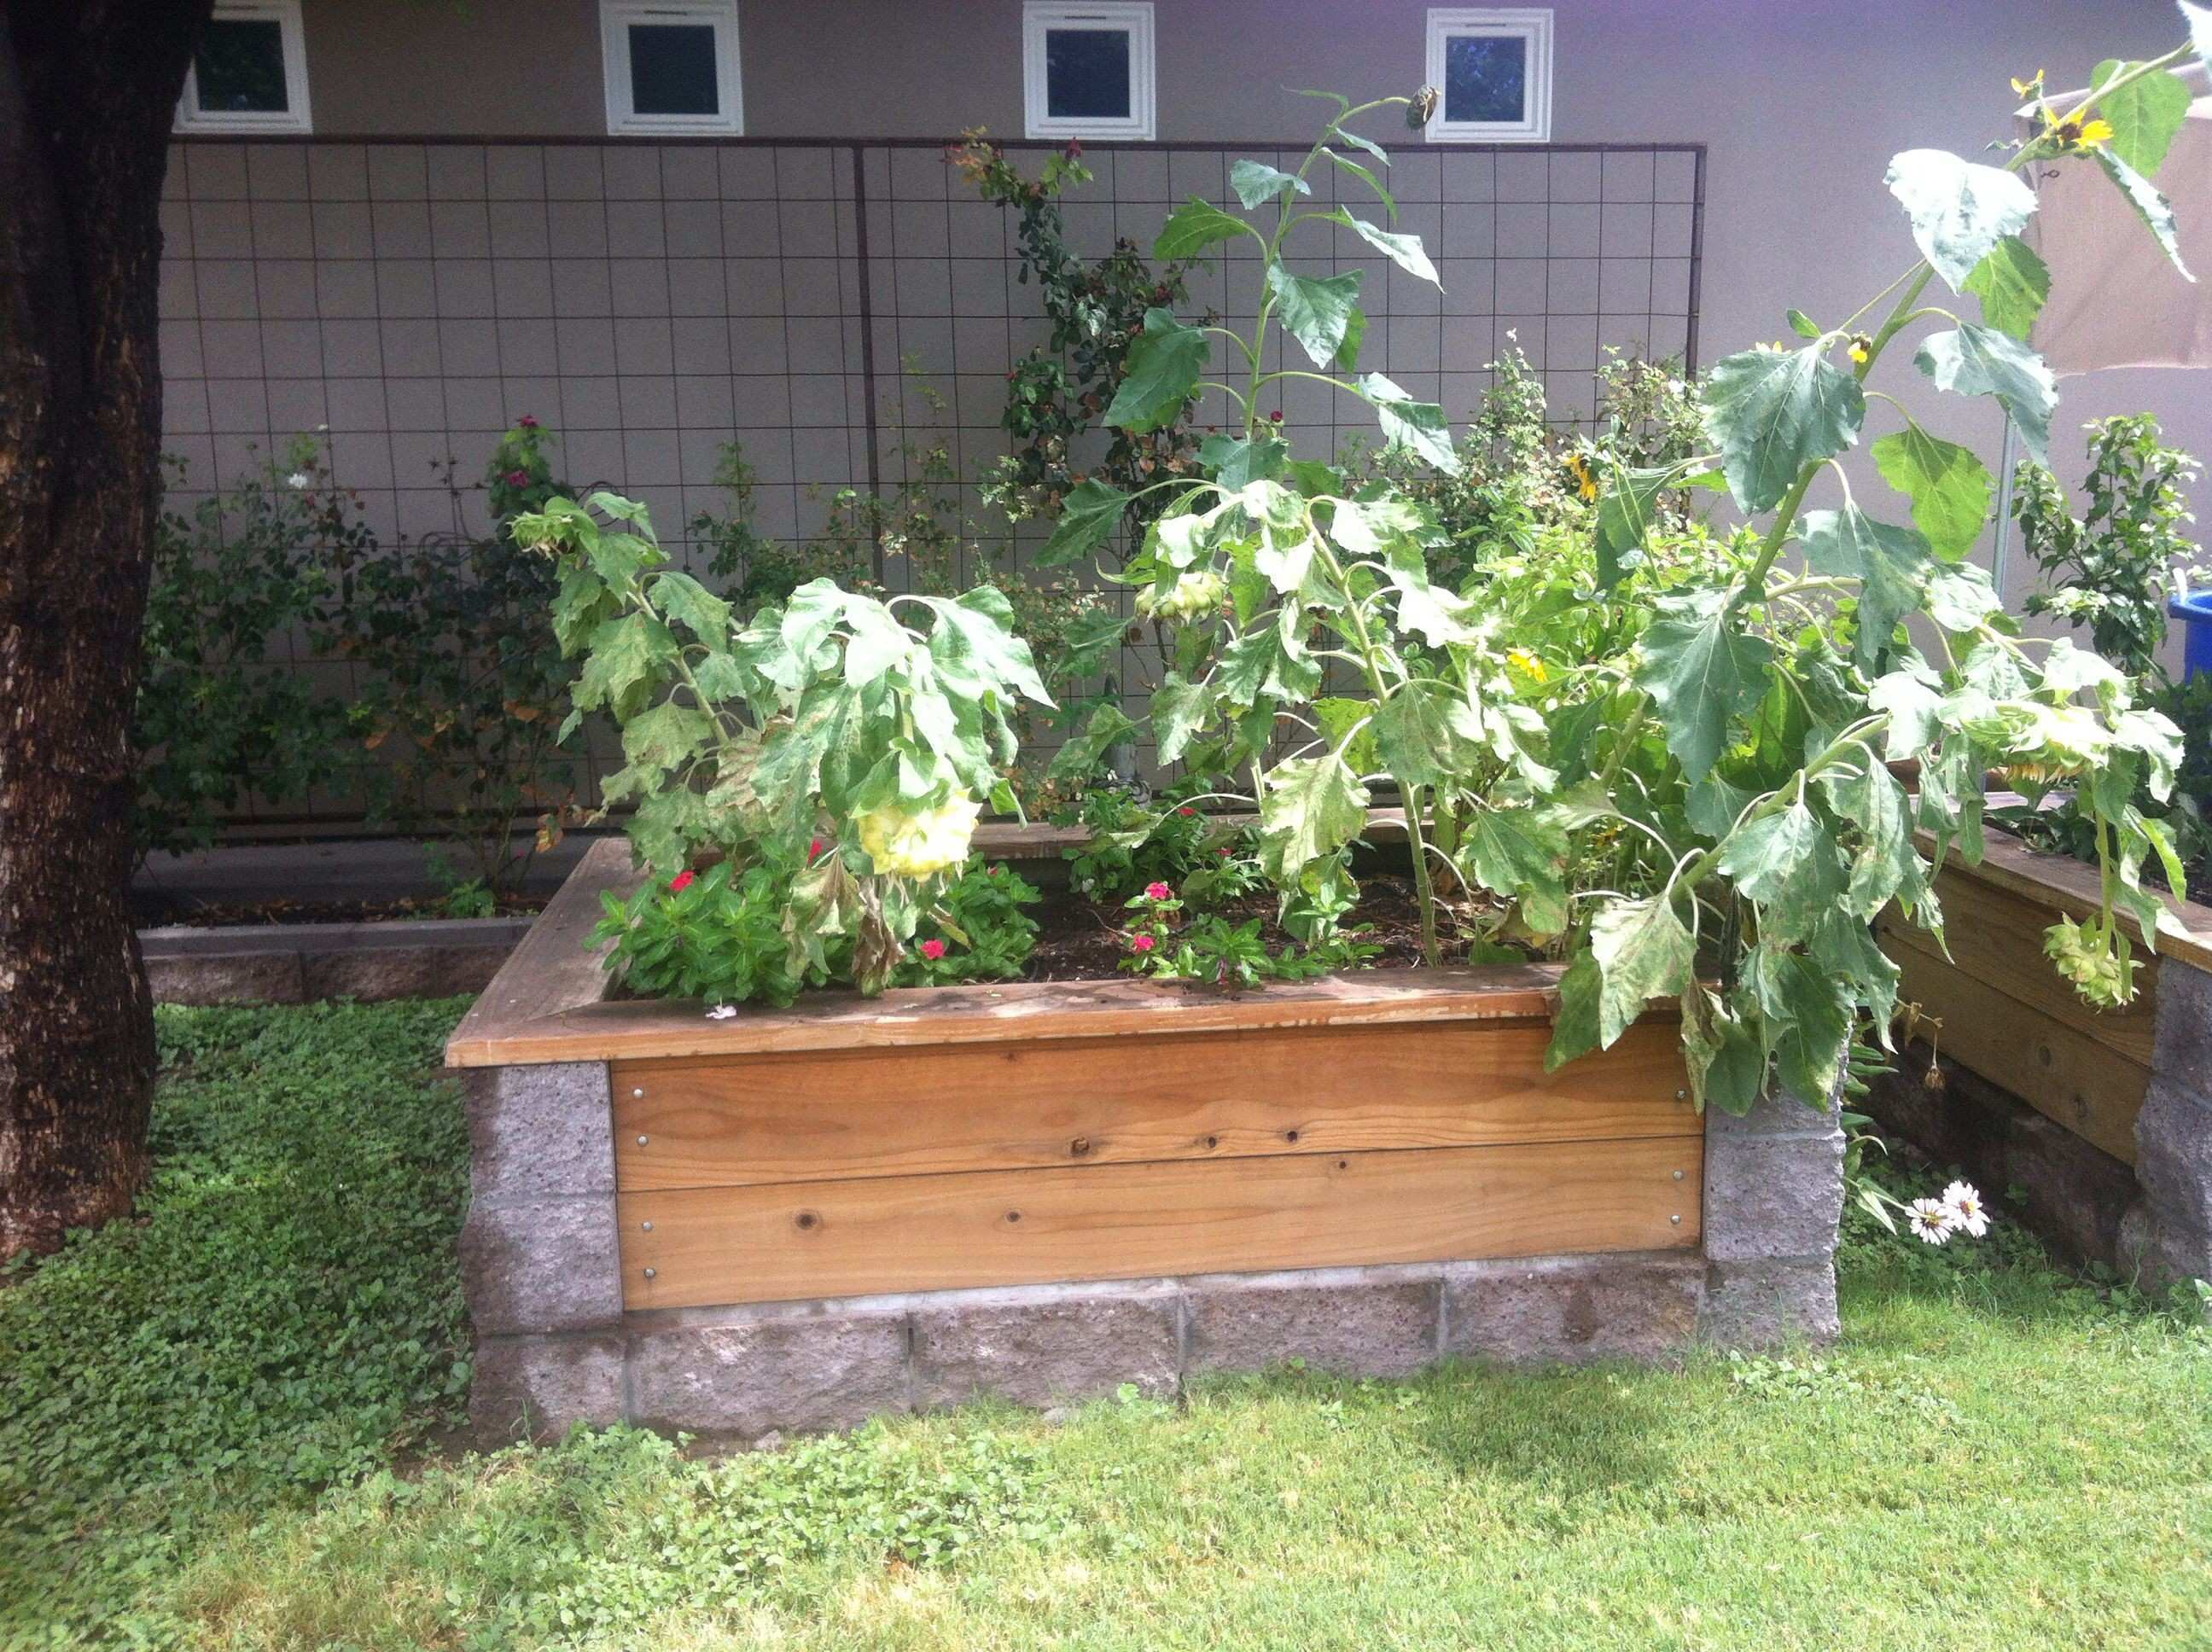 Cinder block and wood garden bed backyard heaven